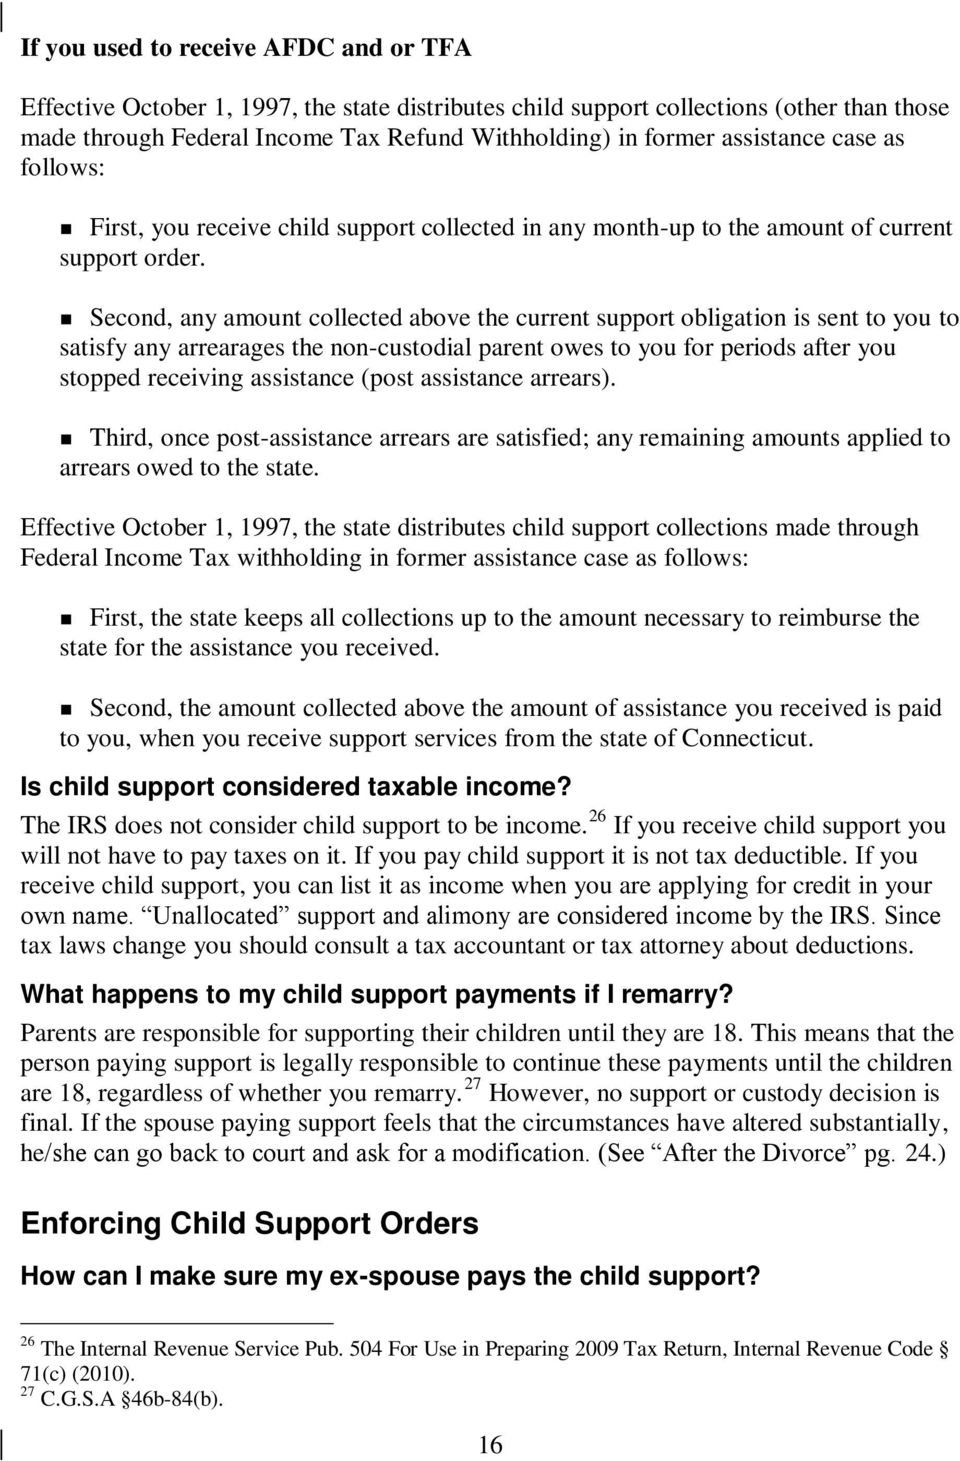 Second, any amount collected above the current support obligation is sent to you to satisfy any arrearages the non-custodial parent owes to you for periods after you stopped receiving assistance